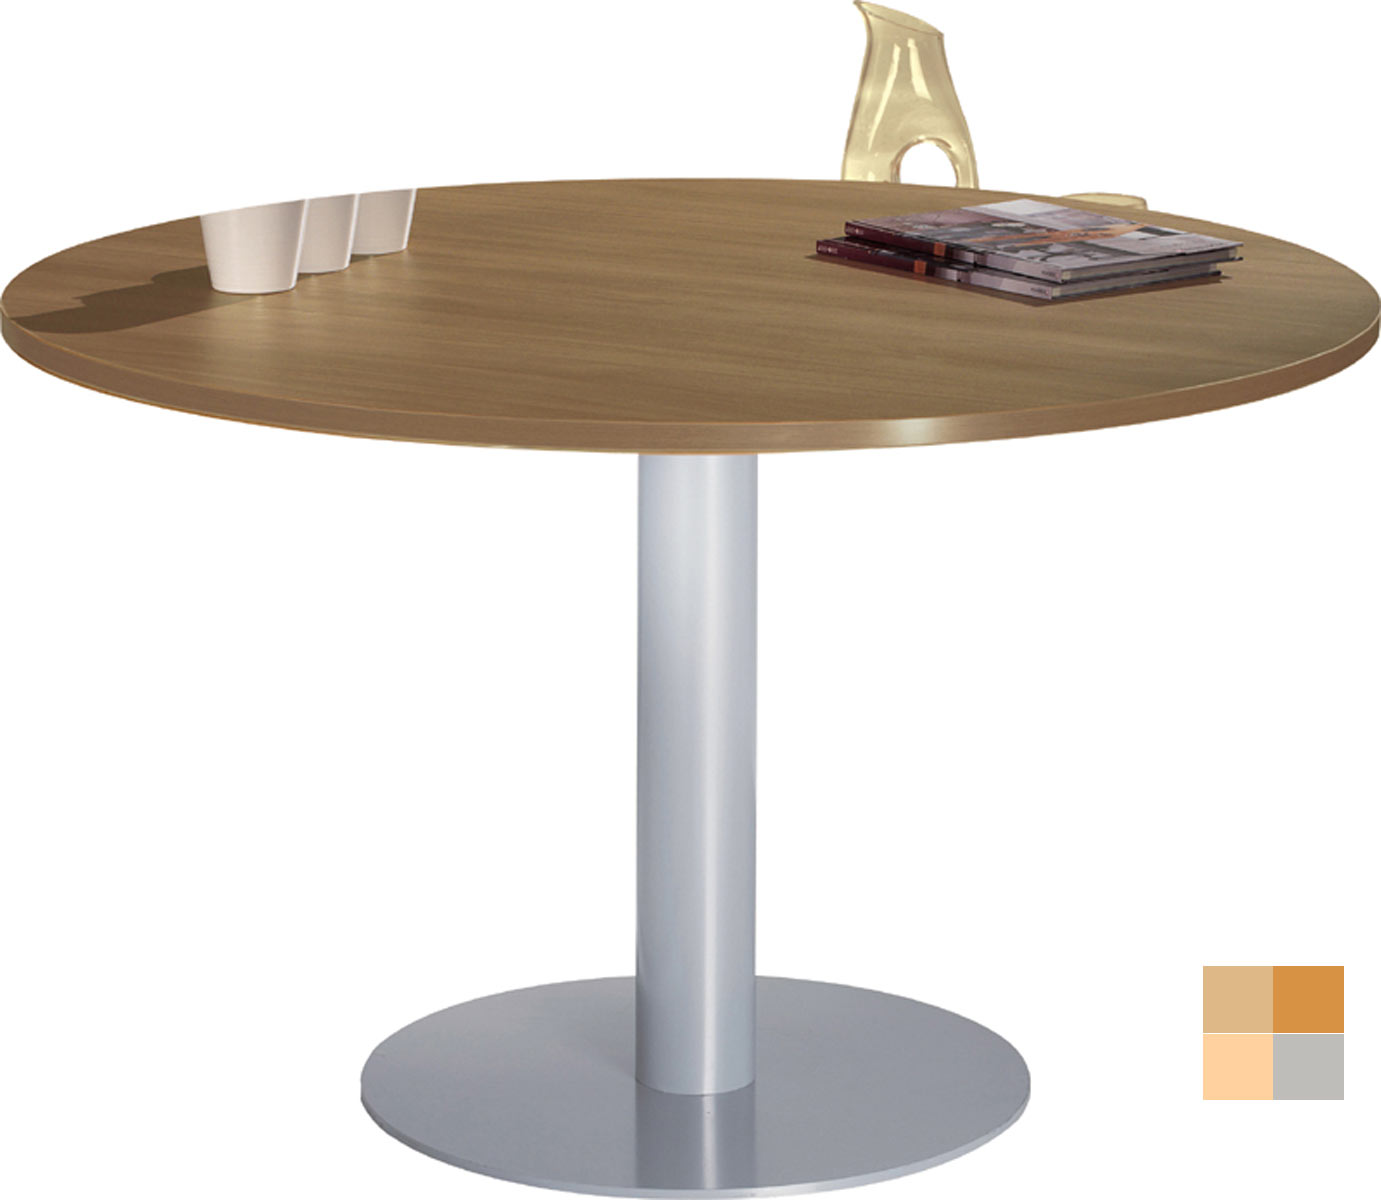 Table Haute Ronde Table Haute Ronde Cuisine - Maison Design - Wiblia.com